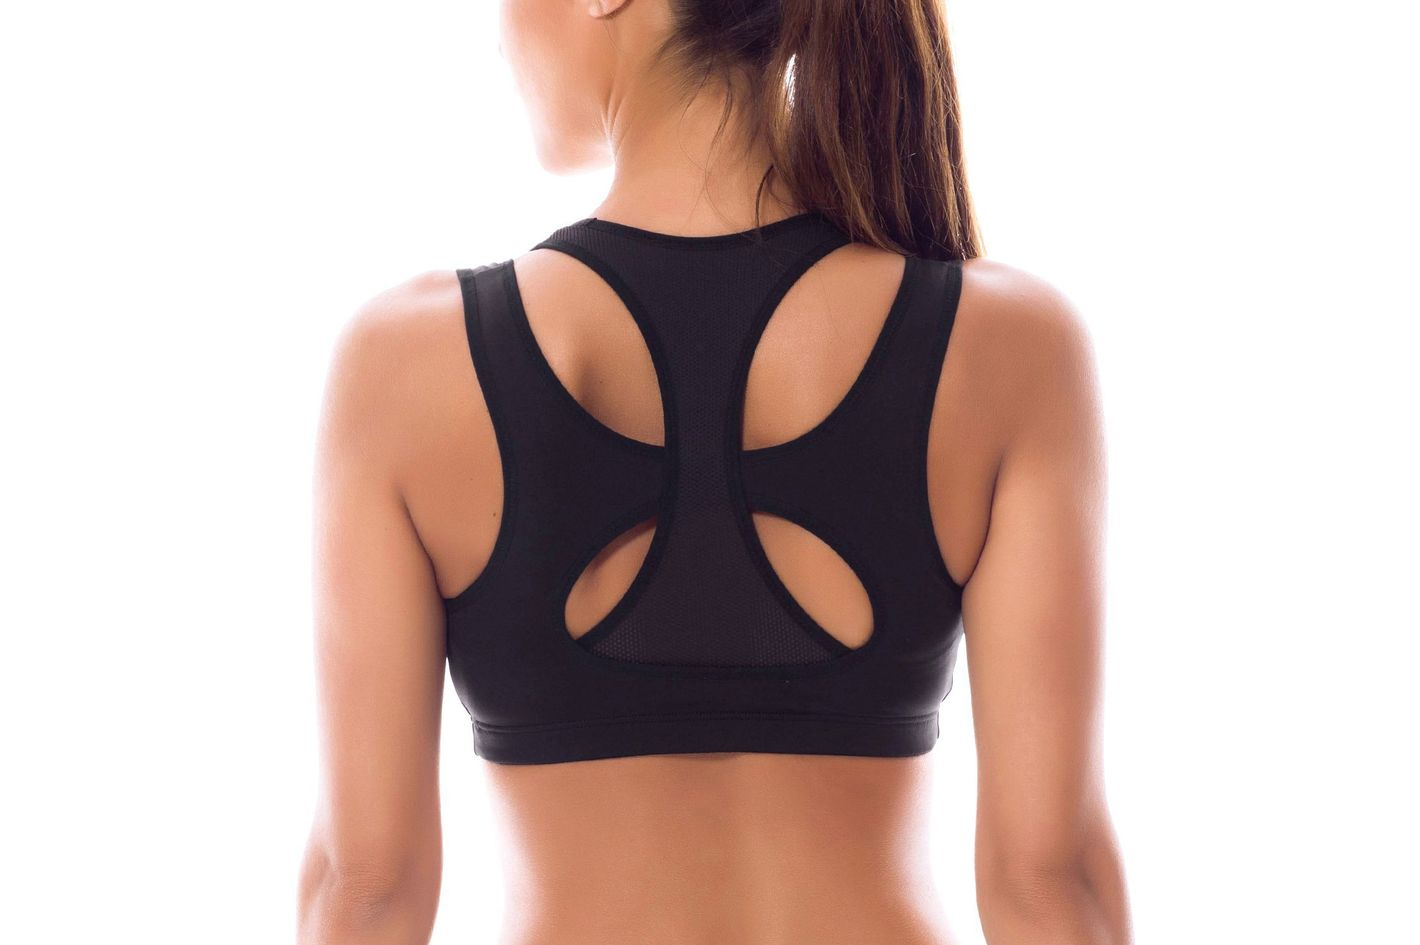 427a3e7e5 SYROKAN Women s High Impact Support Wirefree Workout Racerback Sports Bra  Top